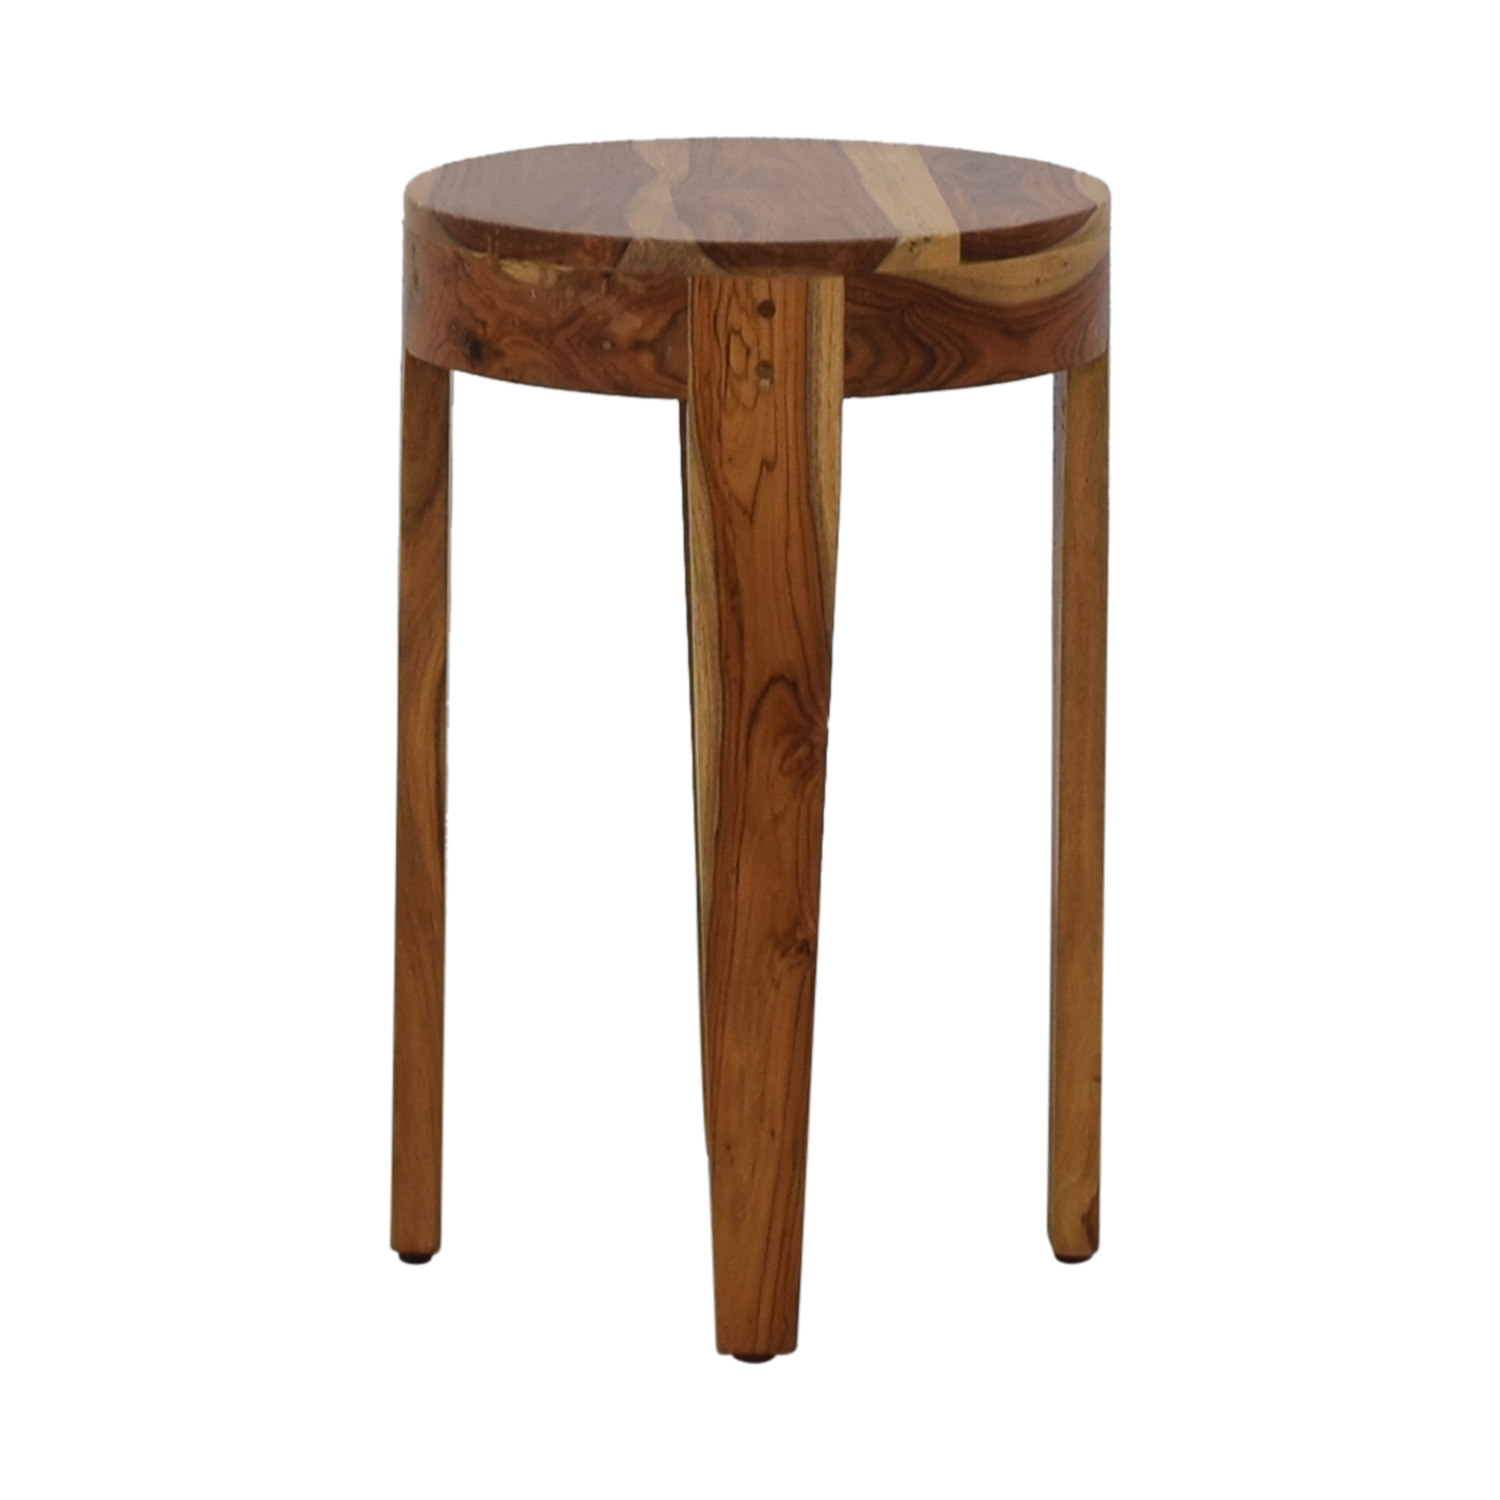 Target Target Small Round Table second hand